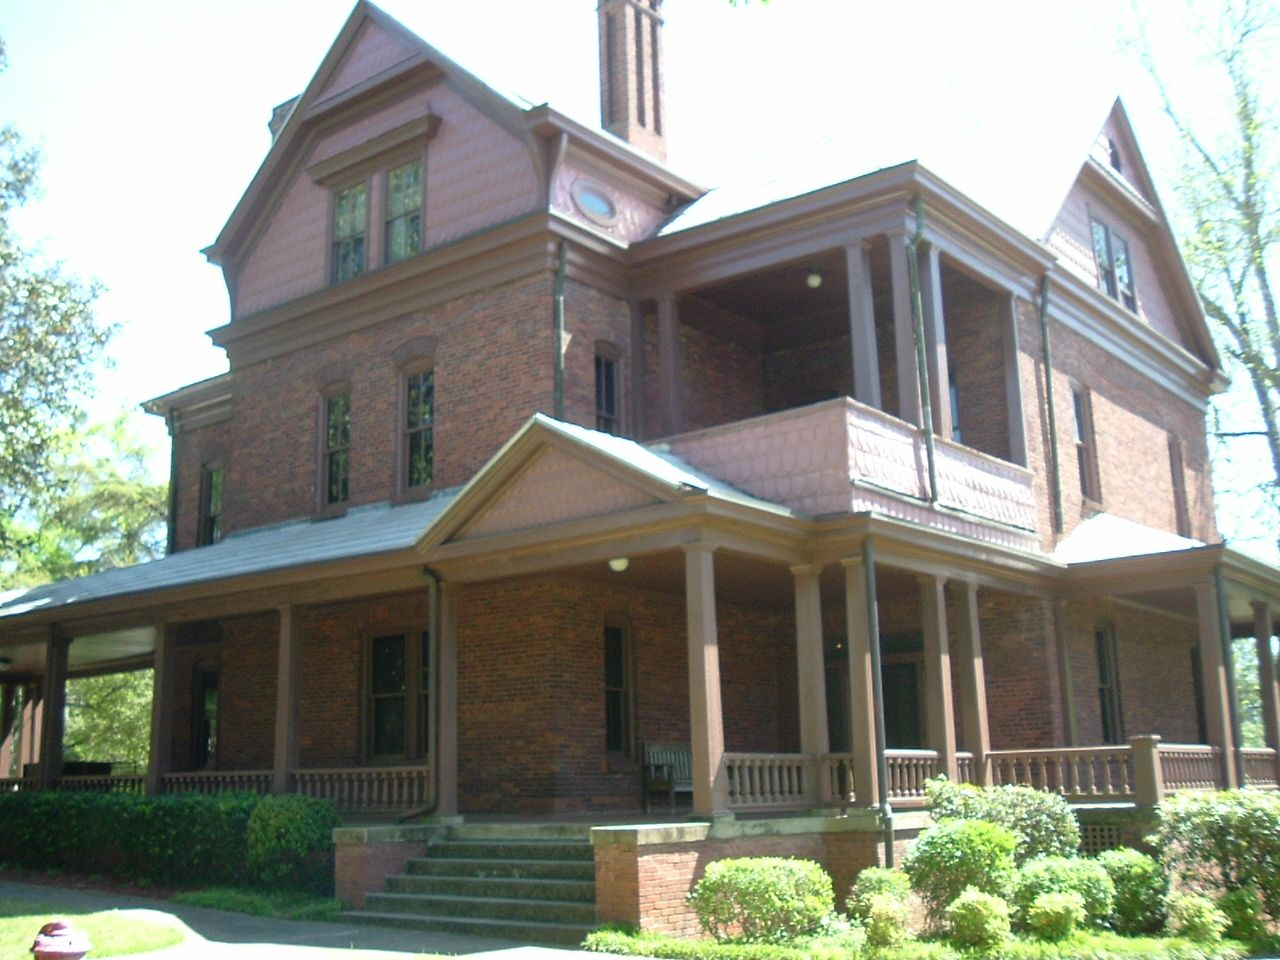 The Booker T. Washington's house (The Oaks) is located at